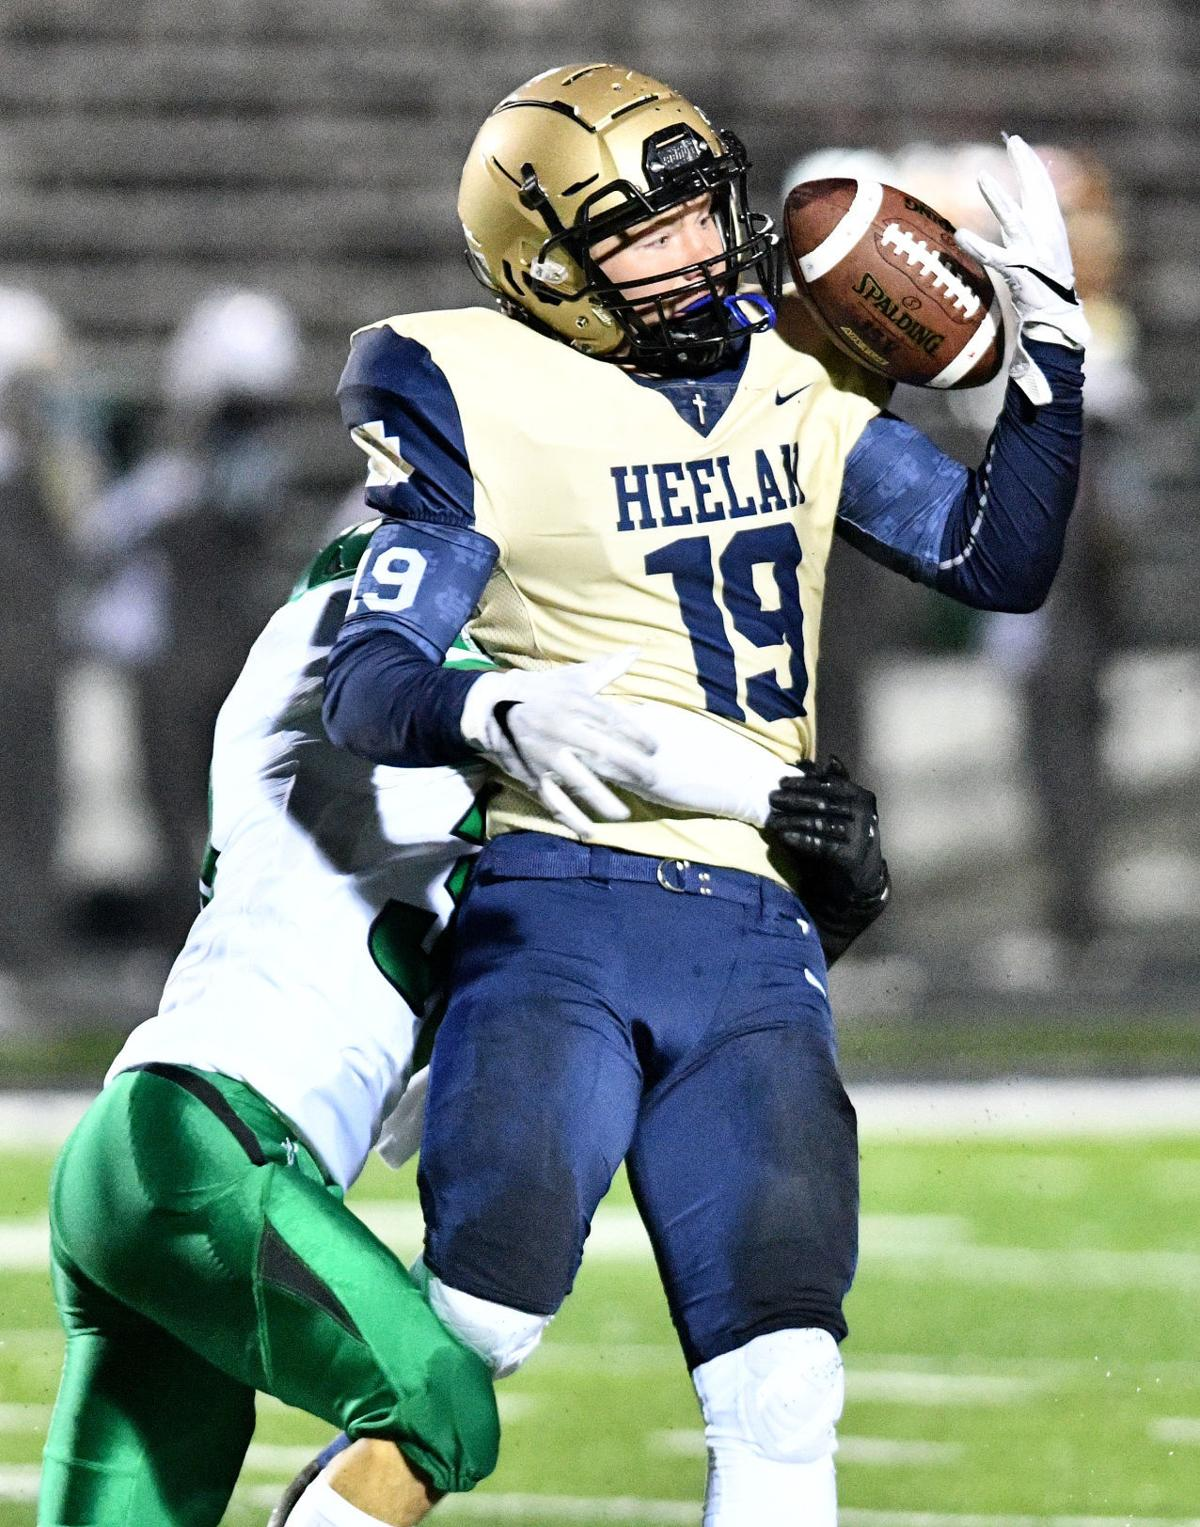 Heelan vs Storm Lake football